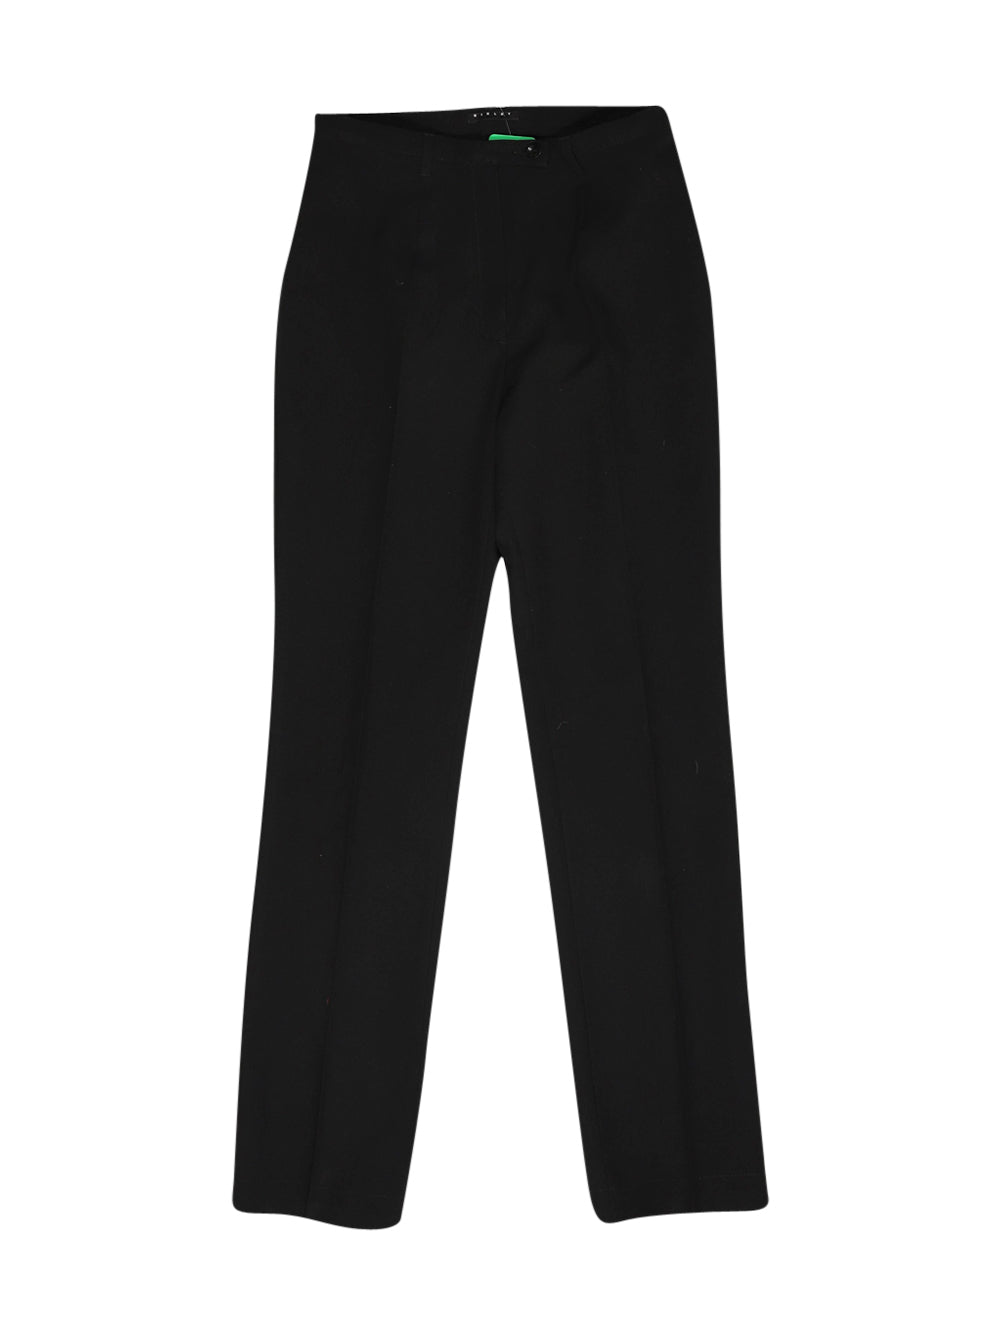 Front photo of Preloved Sisley Black Woman's trousers - size 10/M